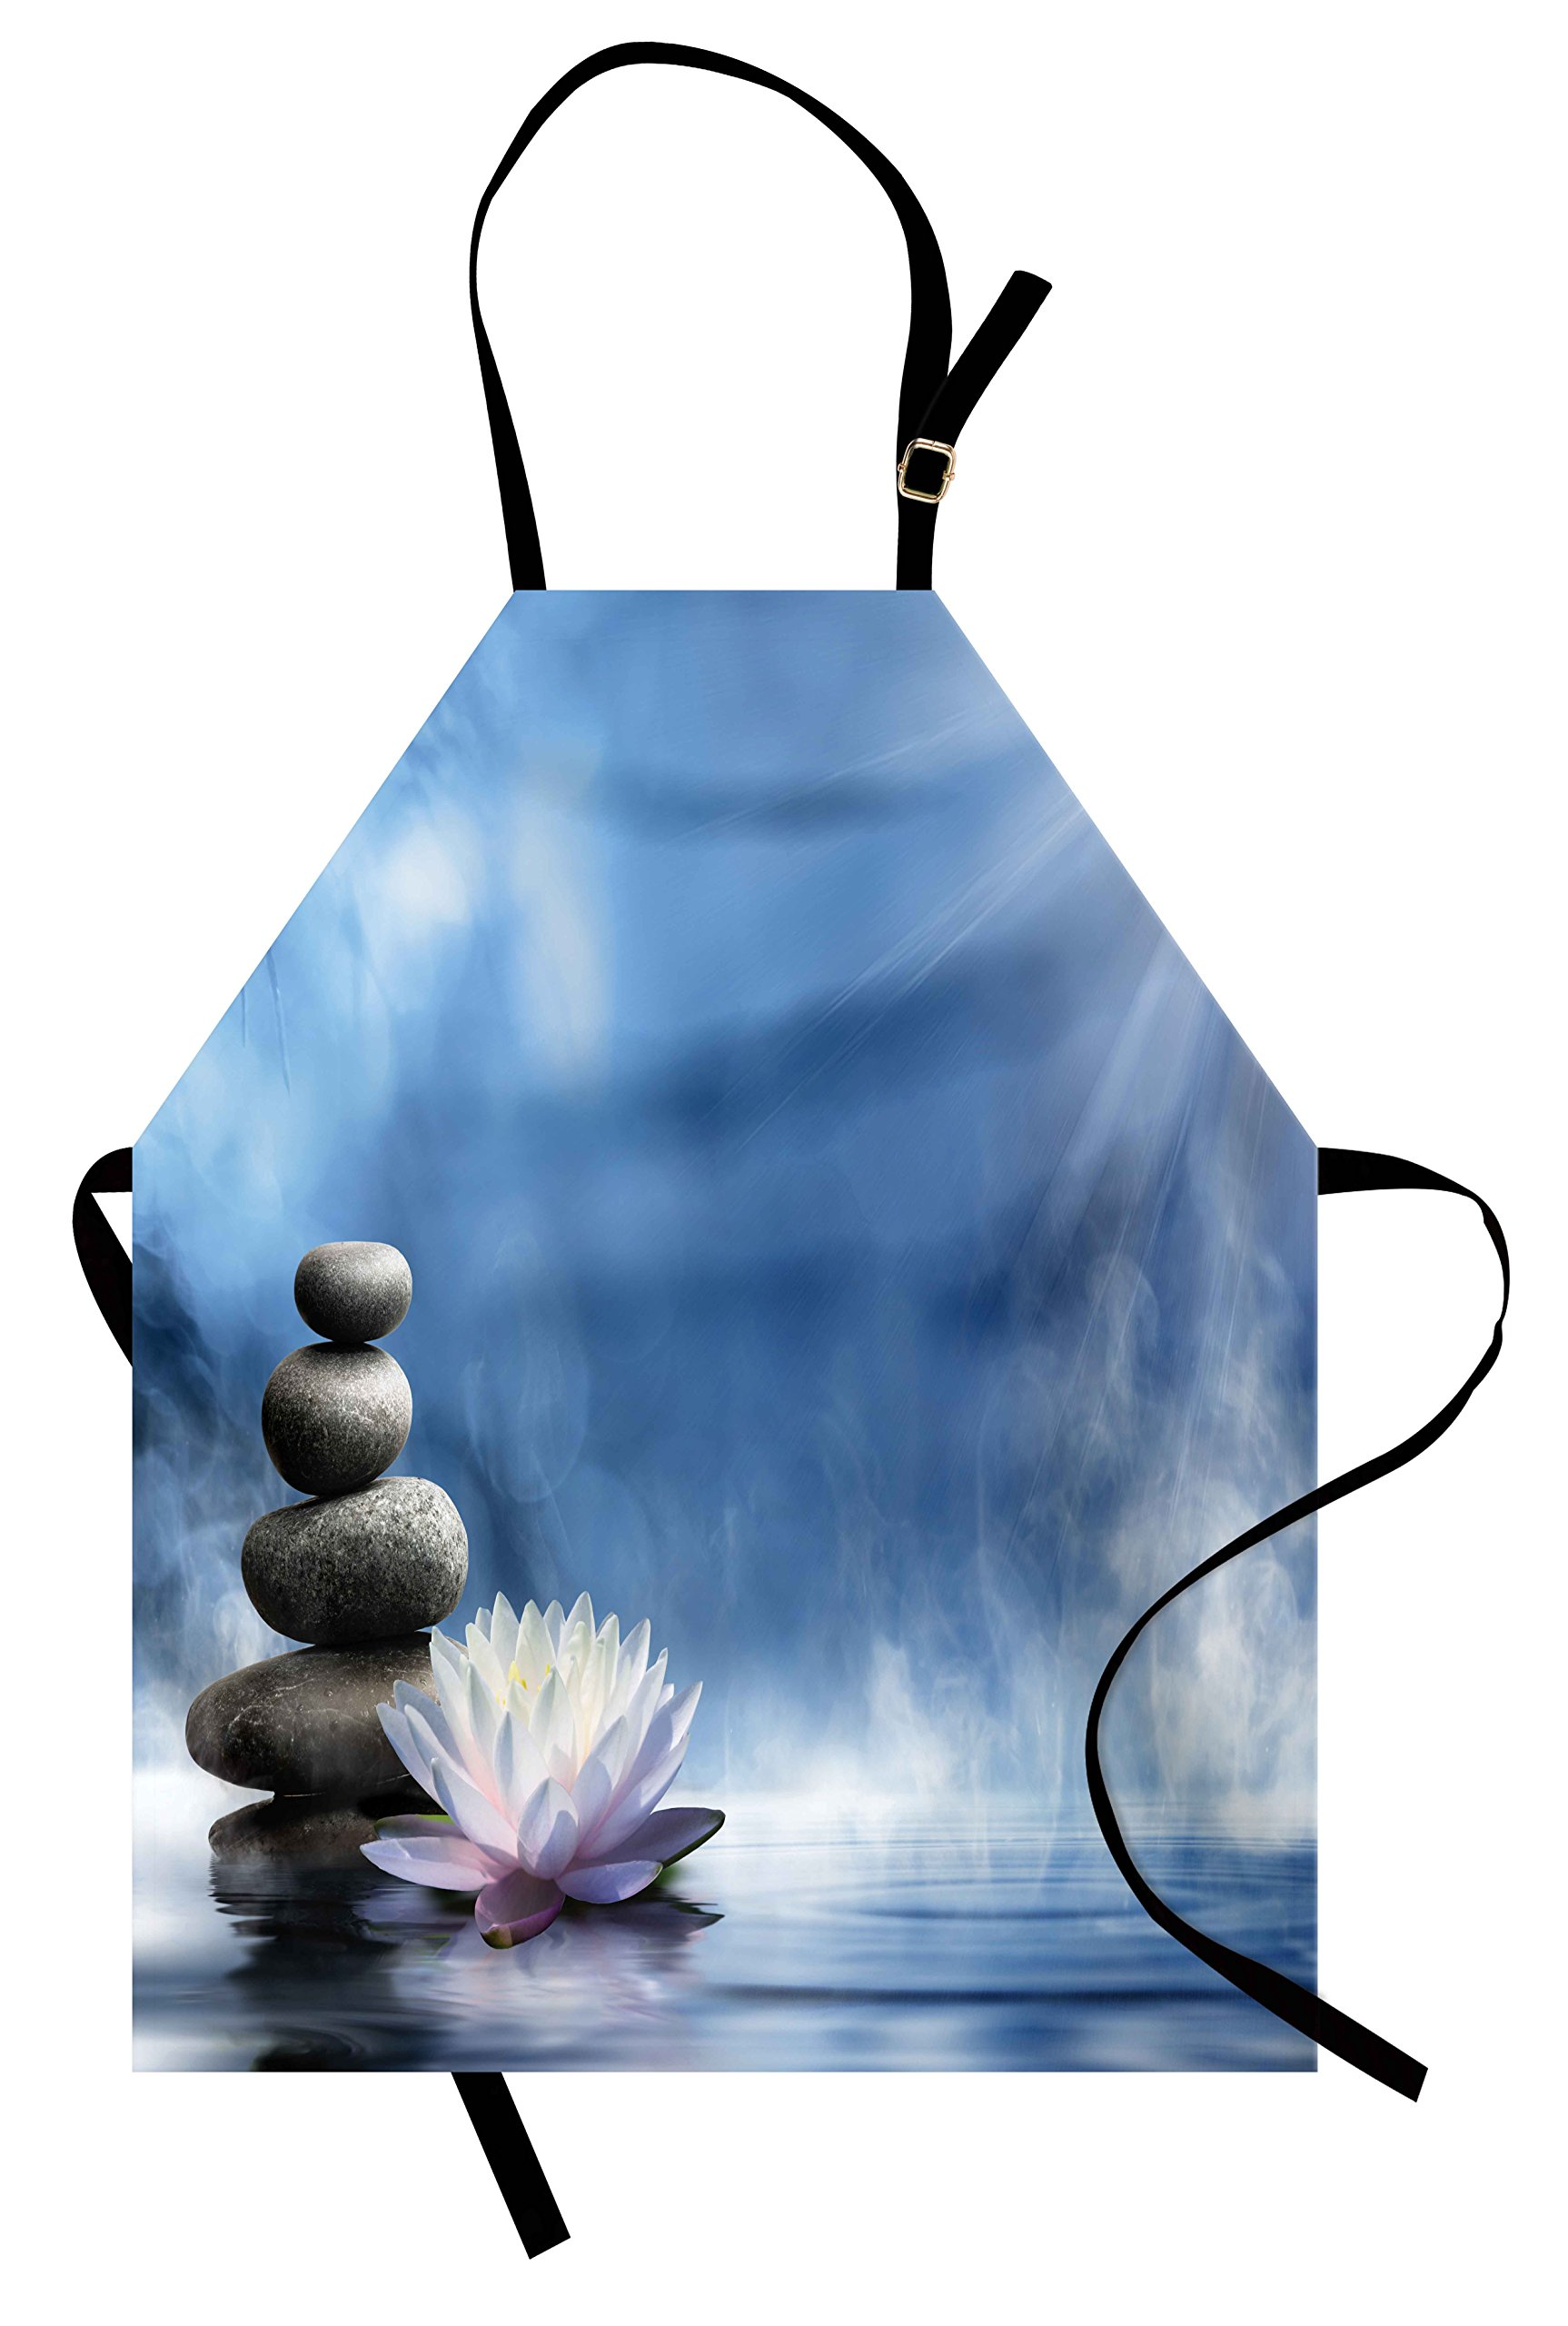 Lunarable Spa Apron, Purity of the Zen Massage Magic Lily Stones Sunbeams Spirituality and Serenity Theme, Unisex Kitchen Bib Apron with Adjustable Neck for Cooking Baking Gardening, Blue White